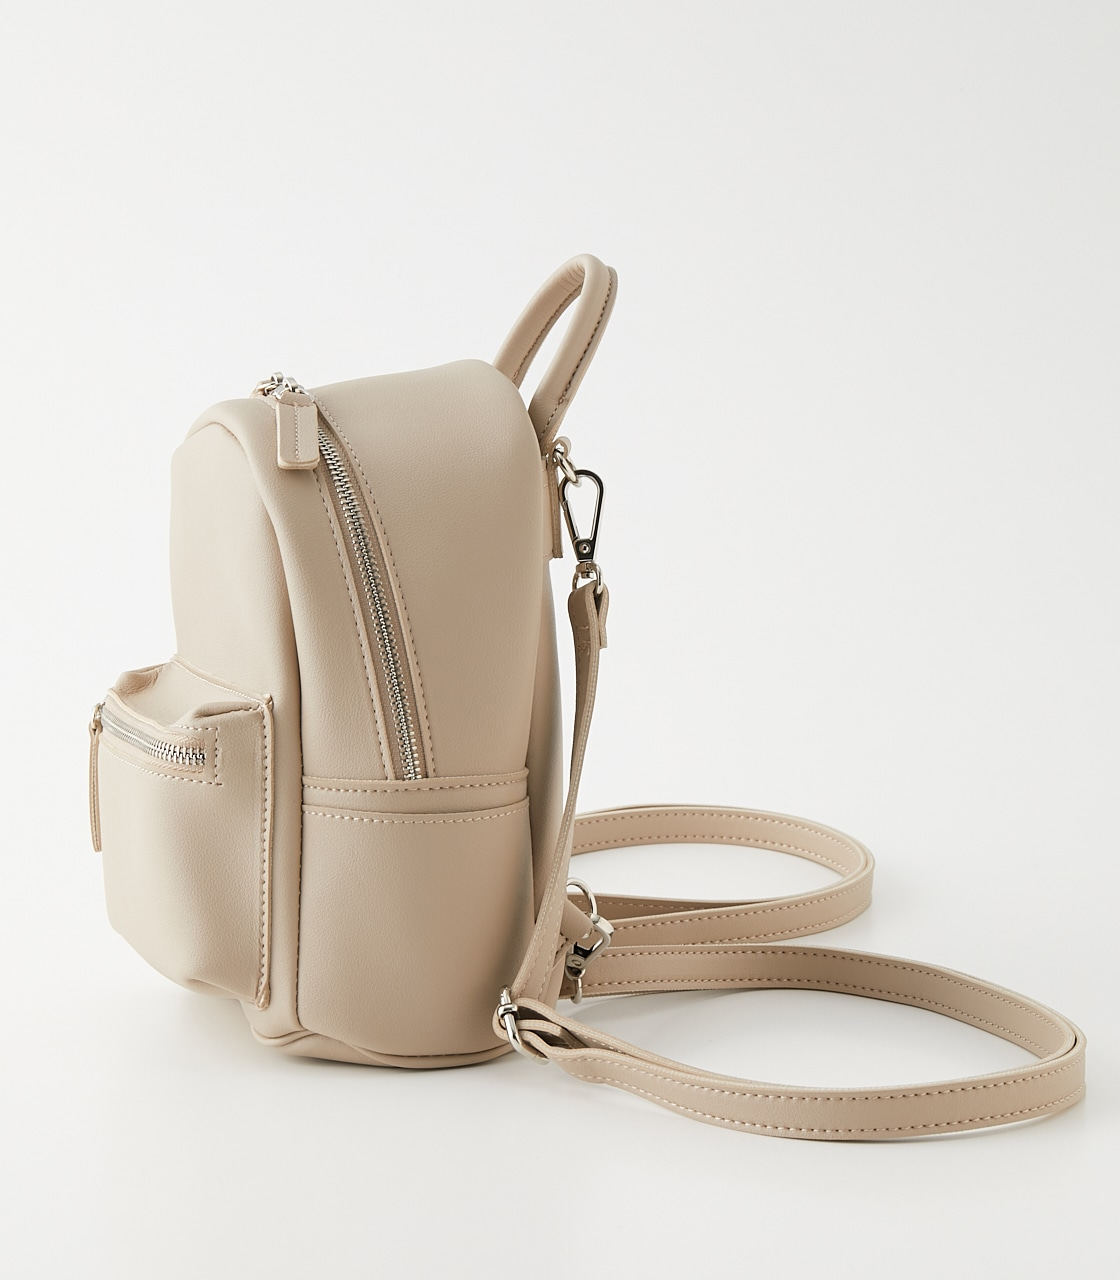 2WAY MINI BACKPACK/2WAYミニバックパック 詳細画像 L/BEG 2